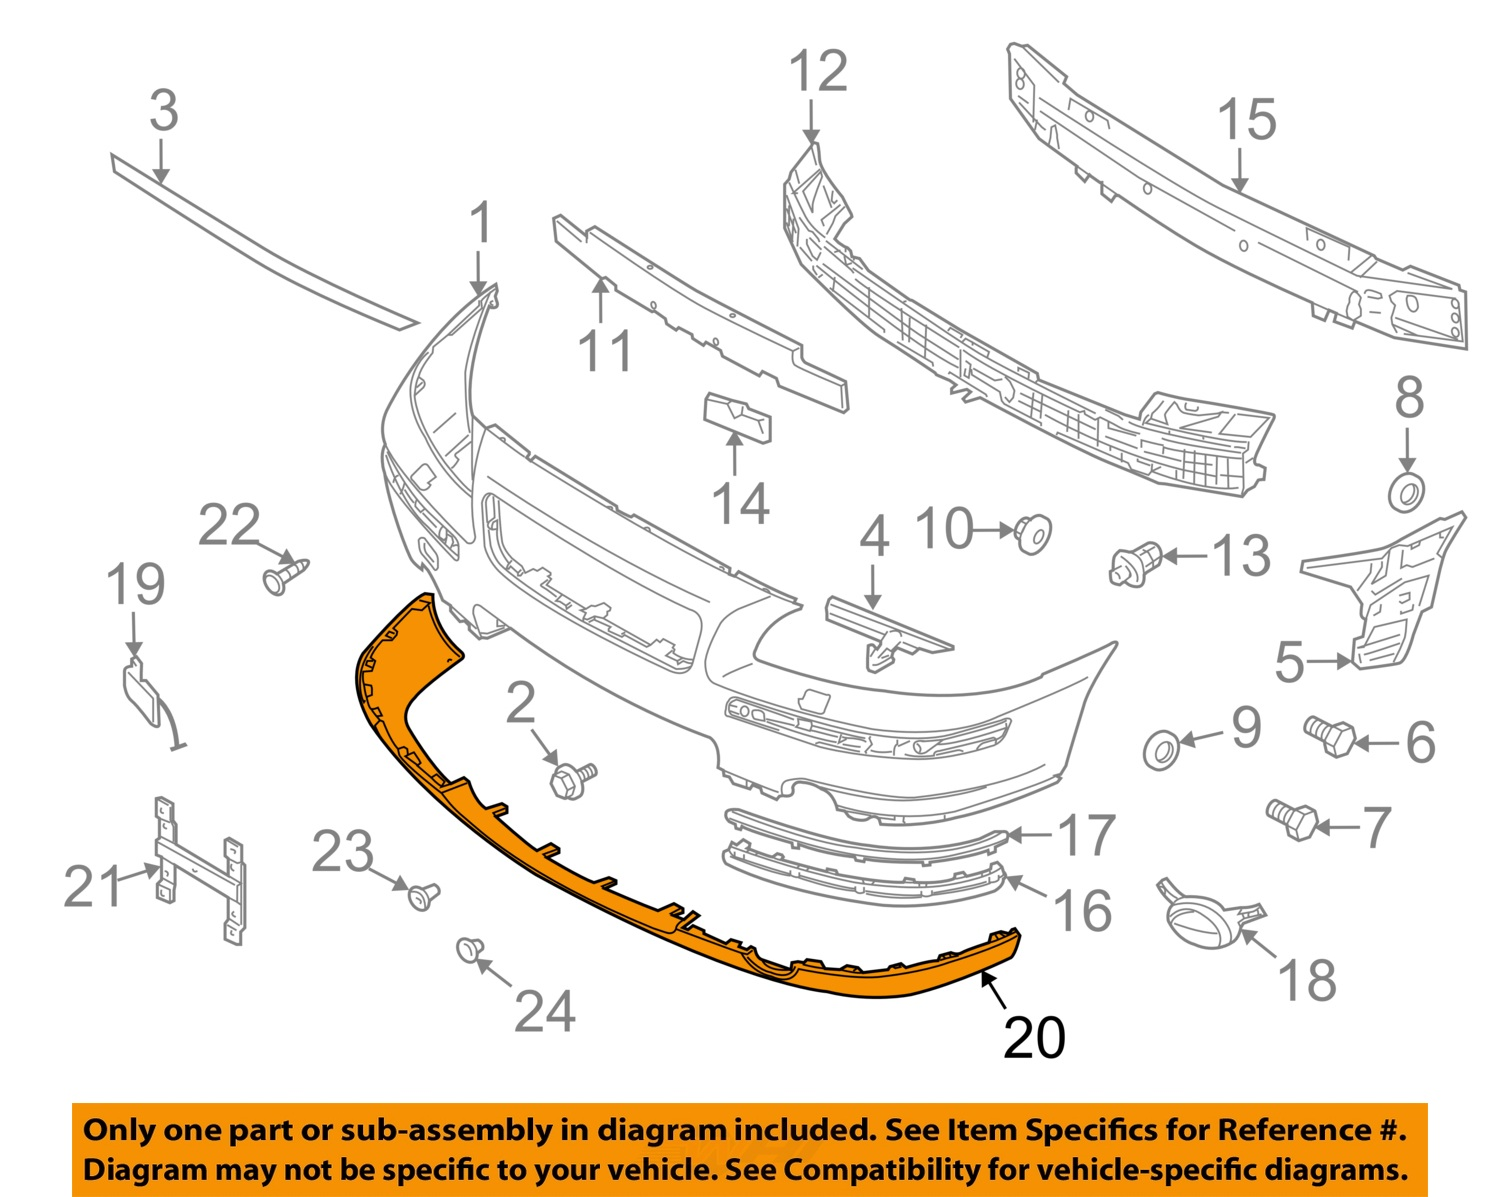 diesel parts for speed breaking volvo se spare manual used